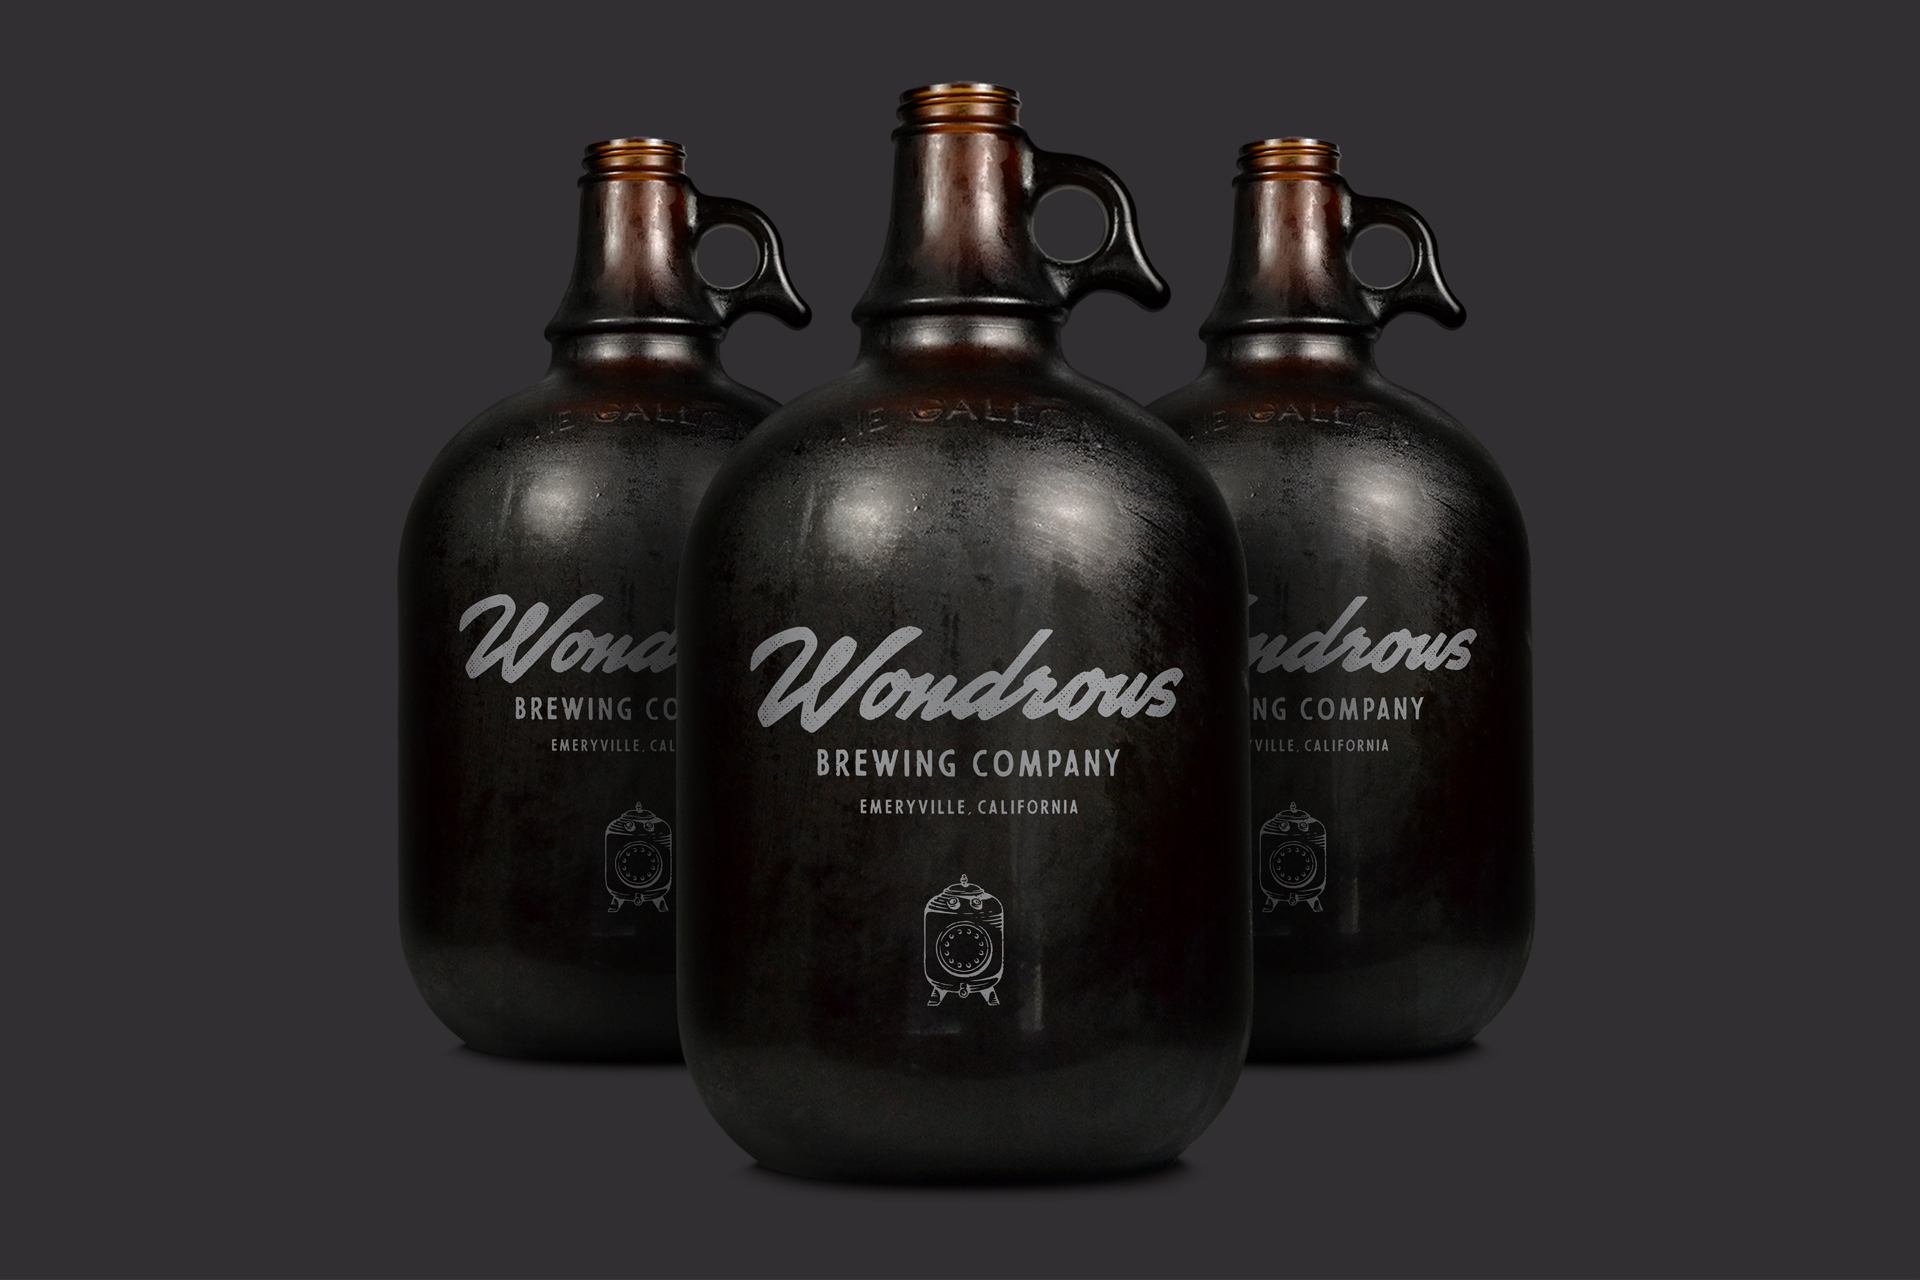 Wondrous_Case_Growlers